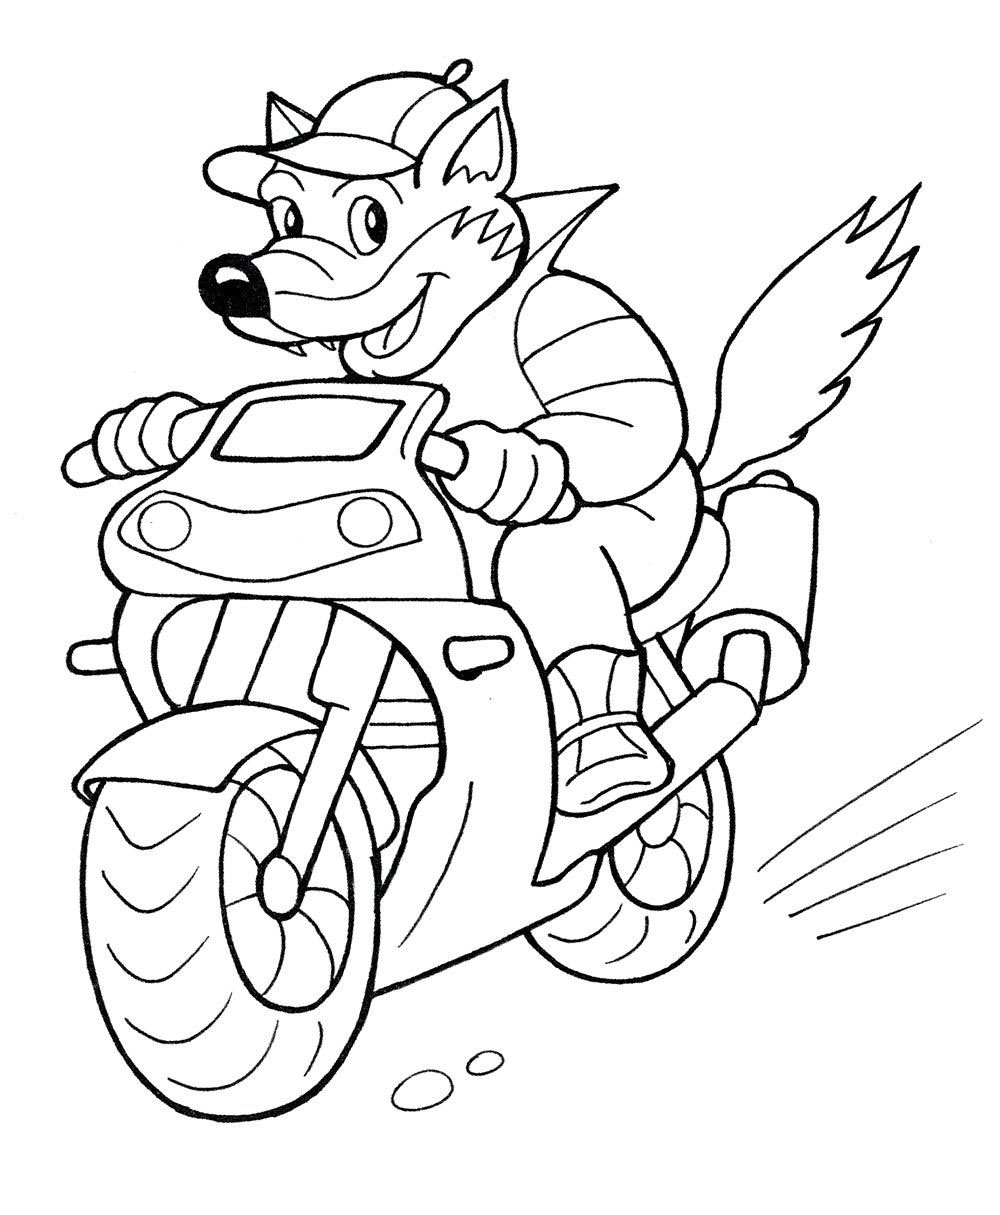 coloring pages for 8 year olds coloring pages for children 7 8 years to download and coloring year for pages olds 8